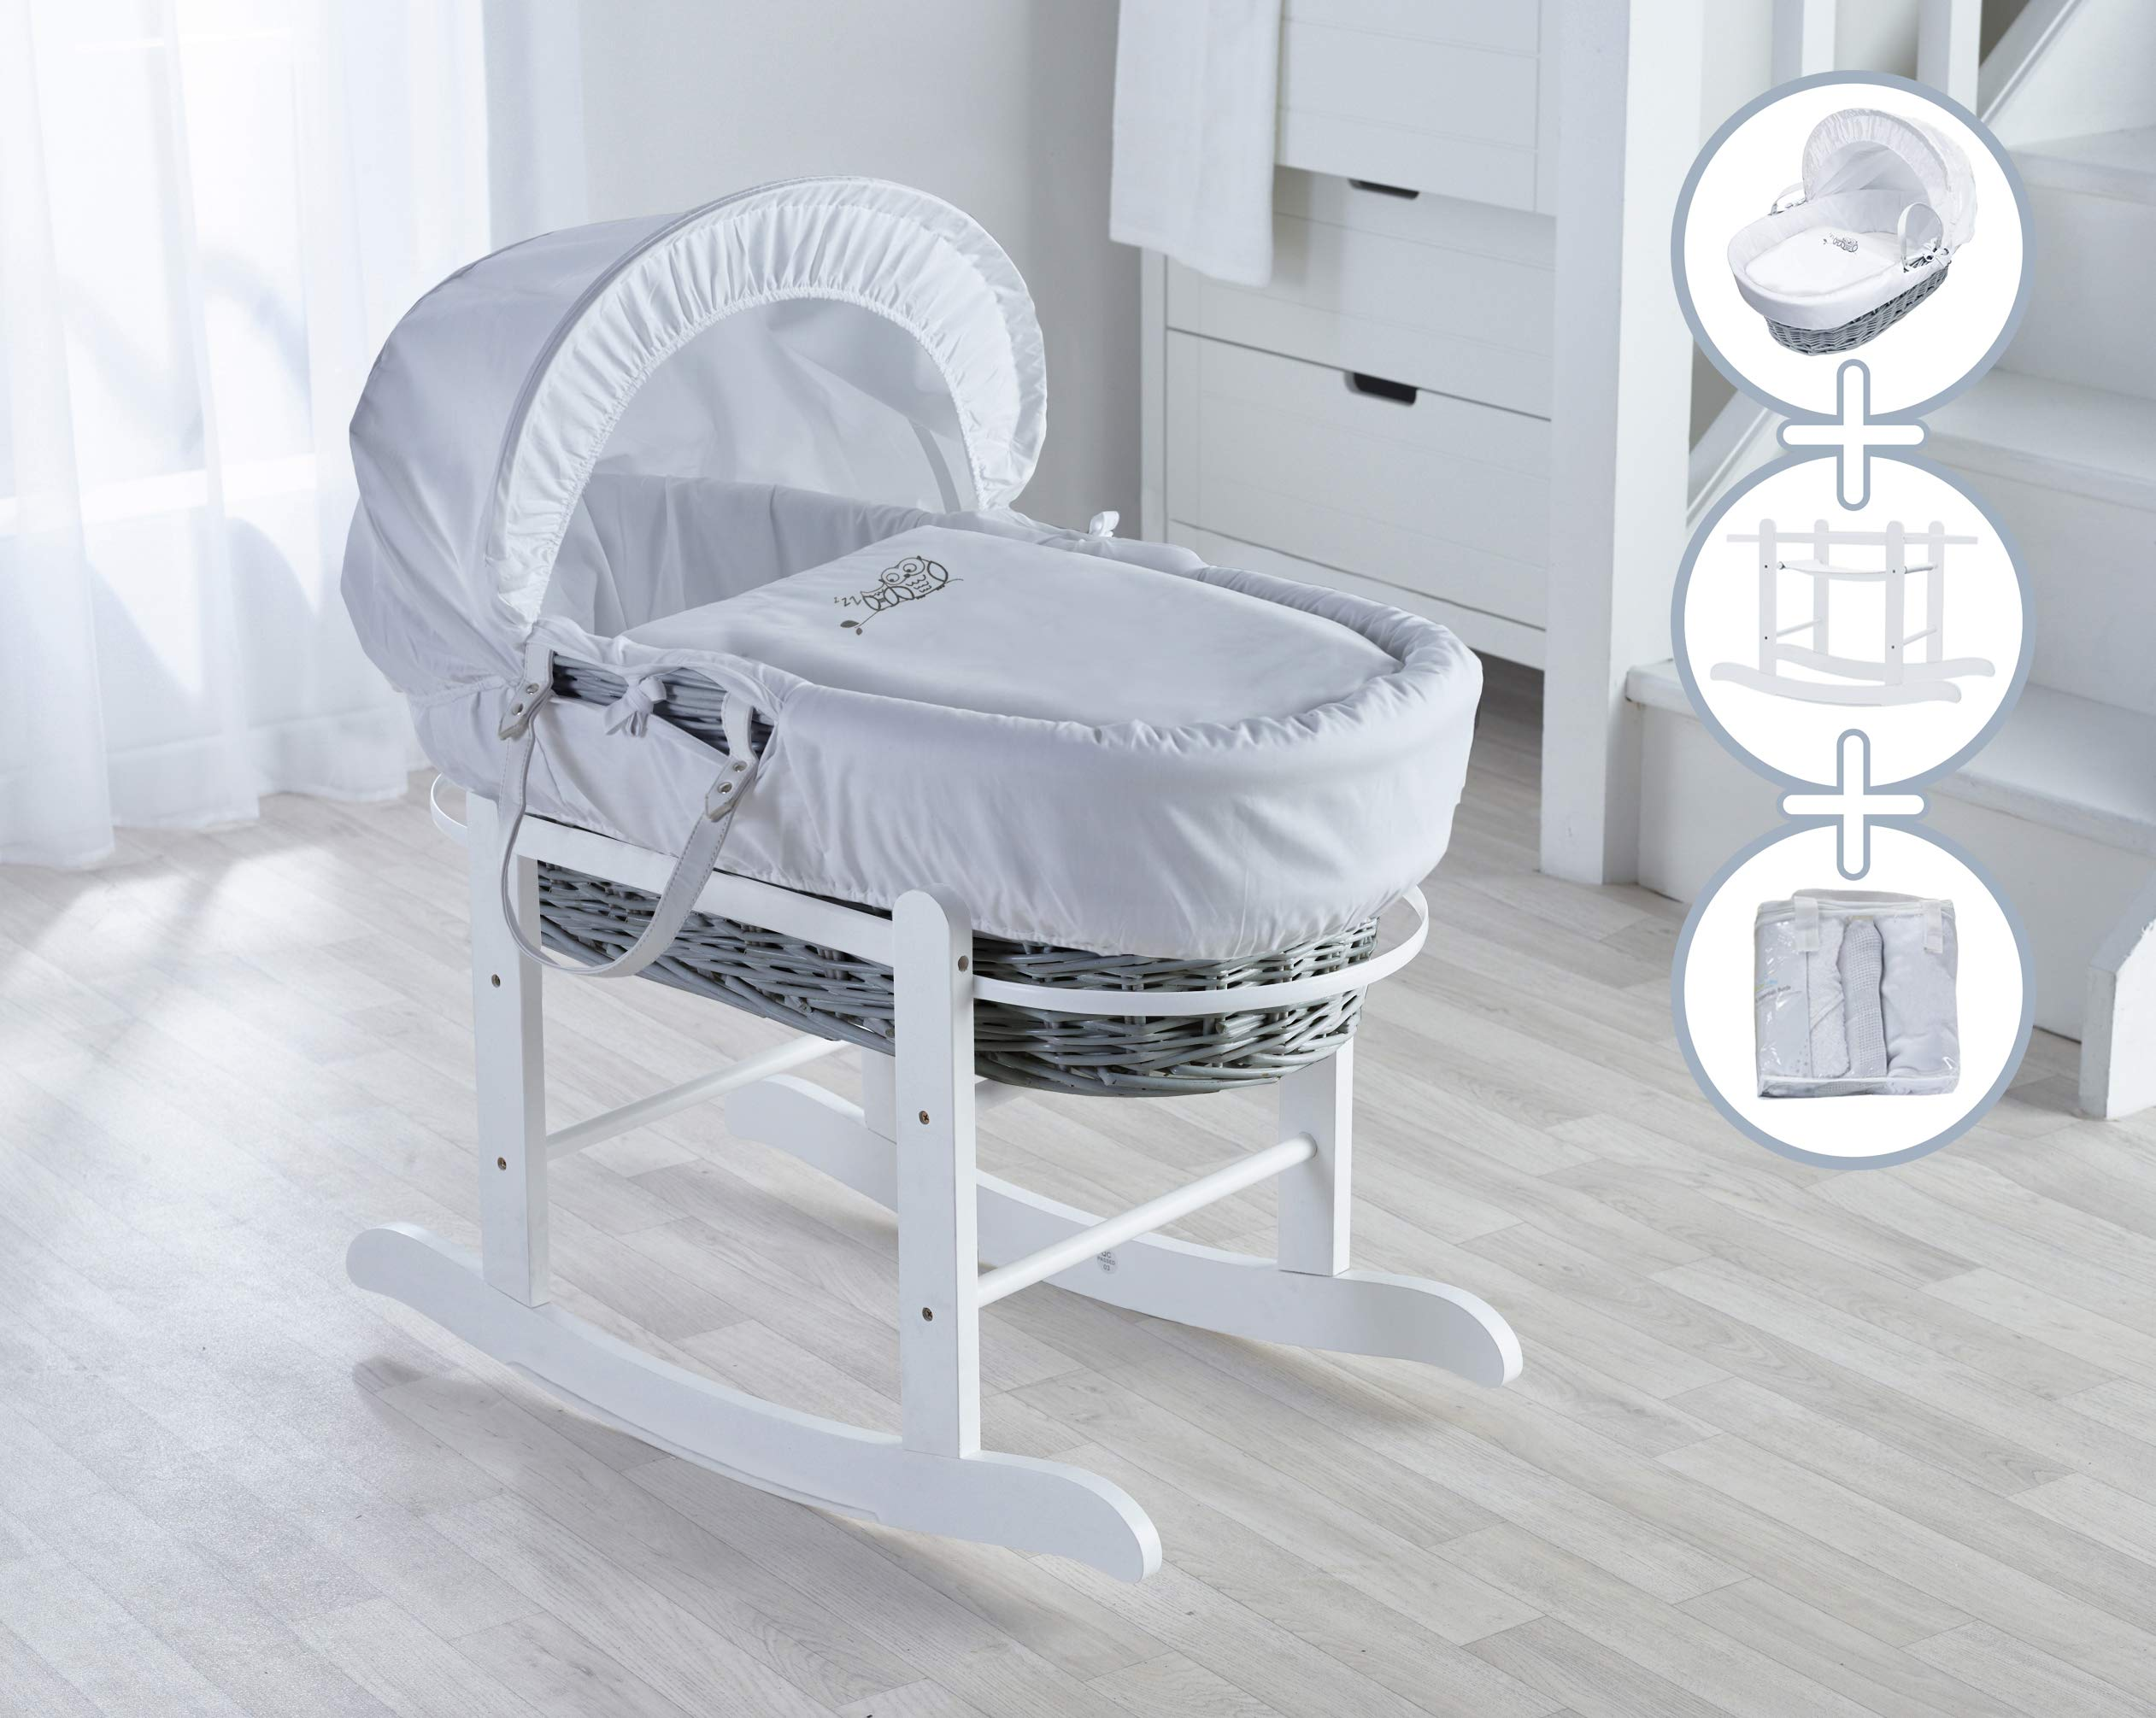 Sleepy Little Owl Moses Basket, Deluxe Rocking Stand and Starter Set Bundle Deal Elegant Baby Stylish Elegant Baby Exclusive moses basket Opulent cotton blend fabric with a luxurious soft padded surround Baby Essentials Bundle in white containing hooded towel, fleece blanket and cellular blanket 1